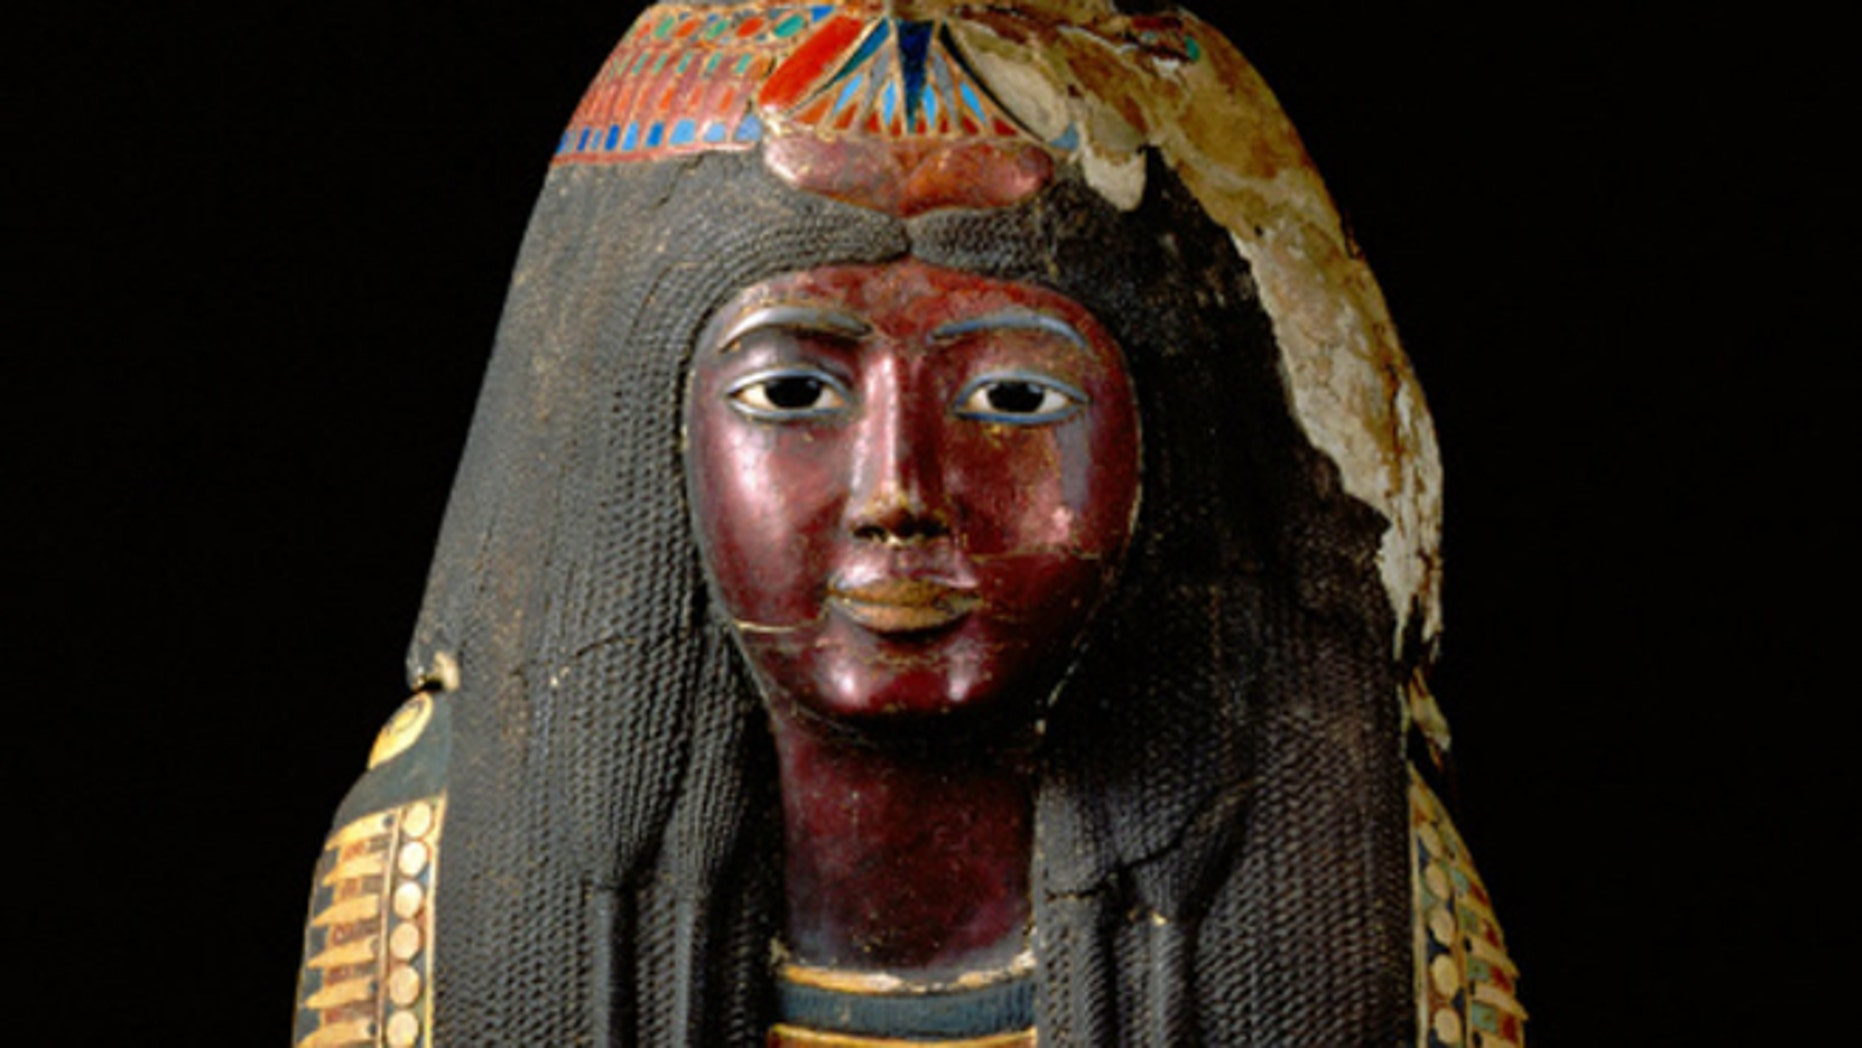 April 22, 2011: The 3,200-year-oldfuneral mask of Lady Ka-Nefer-Nefer can stay at the museum, a federal judge has ruled, saying the U.S. government failed to prove that the relic was ever stolen after it went missing from the Egyptian Museum in Cairo about 40 years ago.